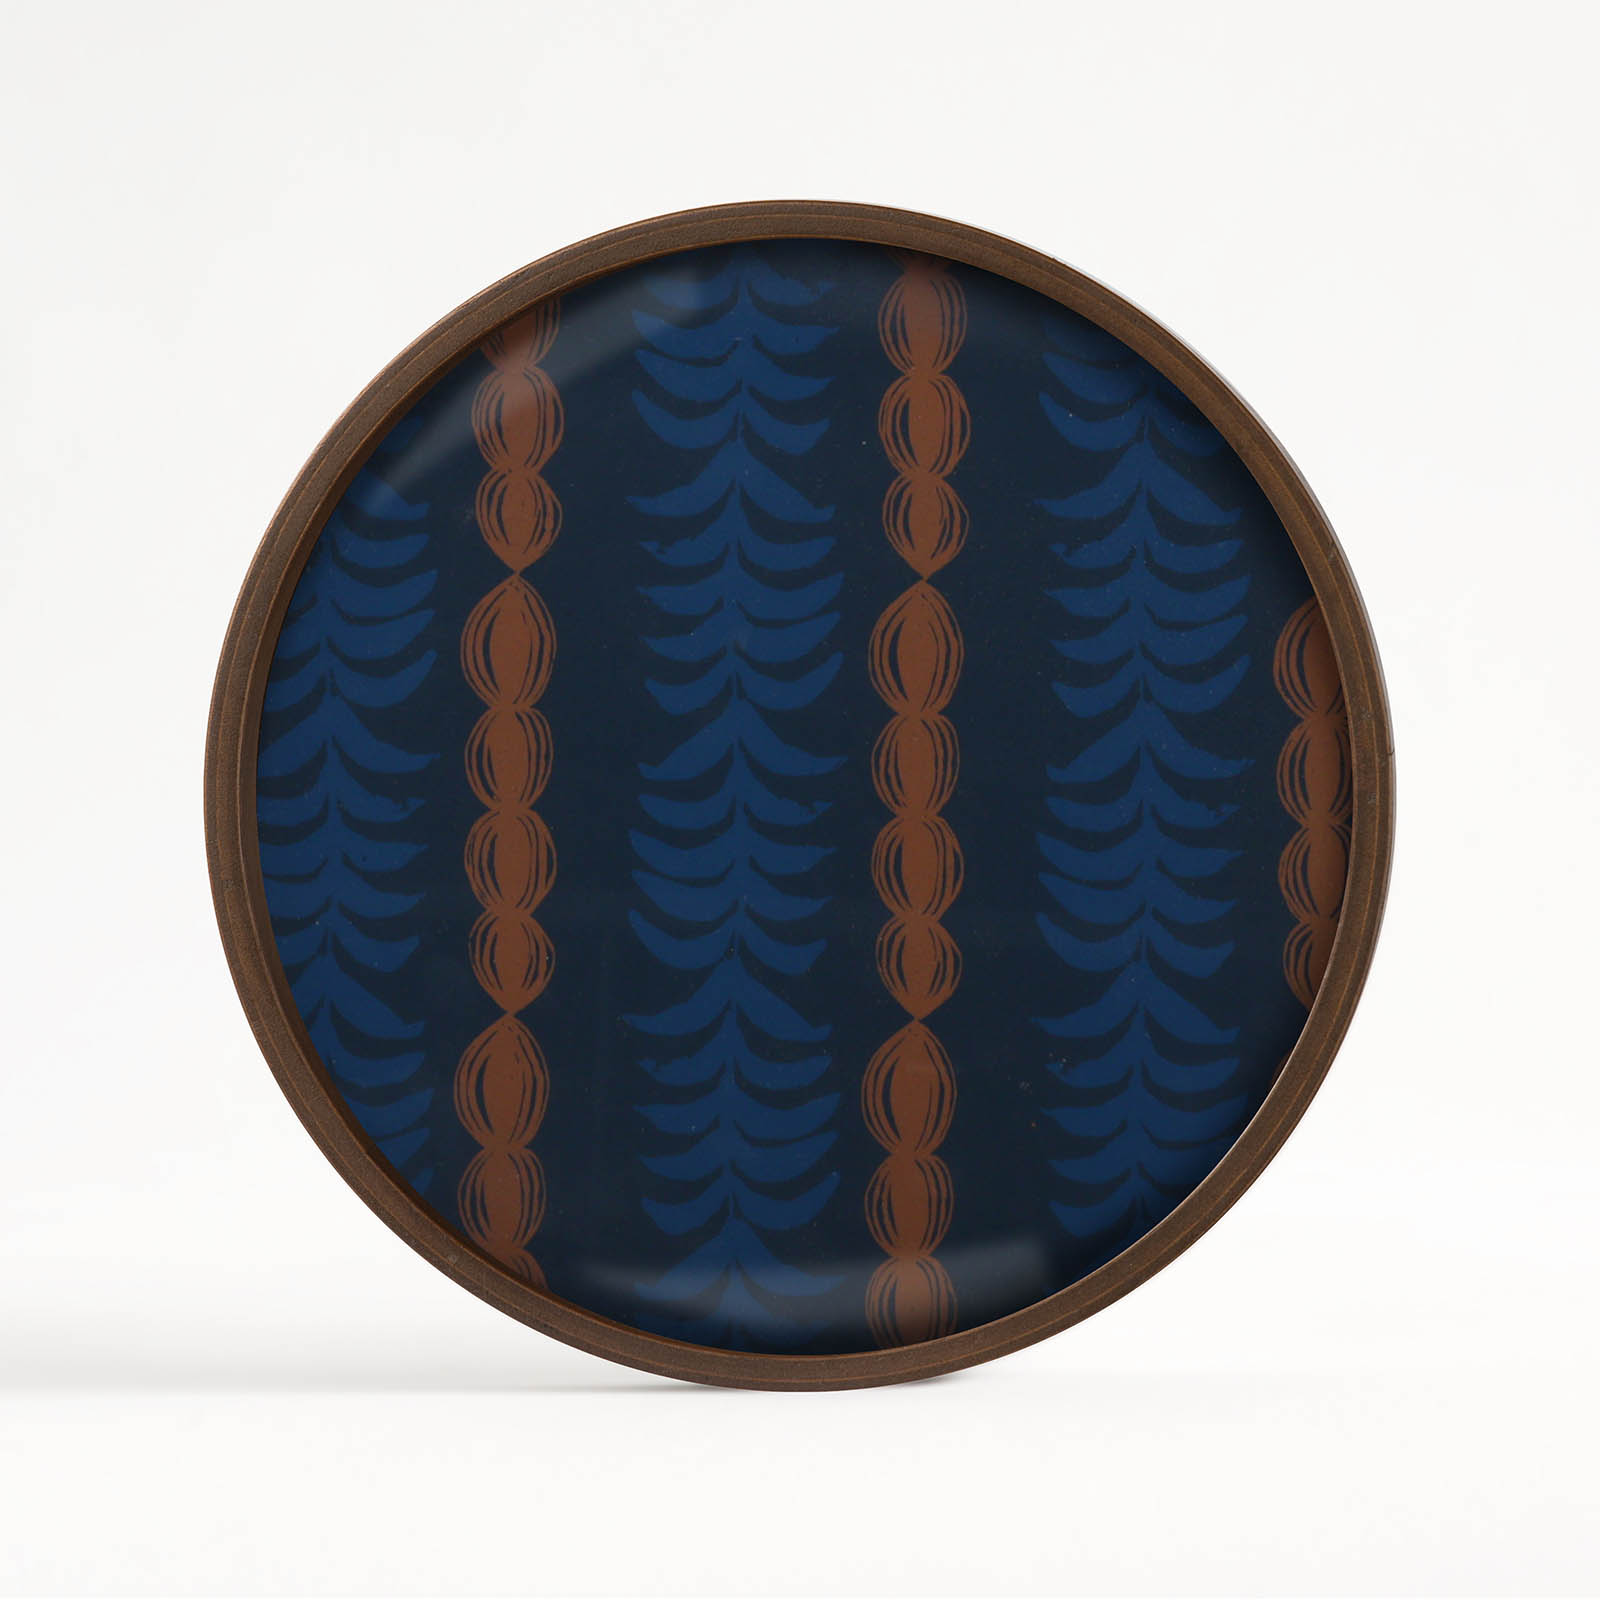 ETHNICRAFTRoyal Palm glass valet tray - round(L)로얄 팜 글래스 발렛 트레이 - 라운드(L)